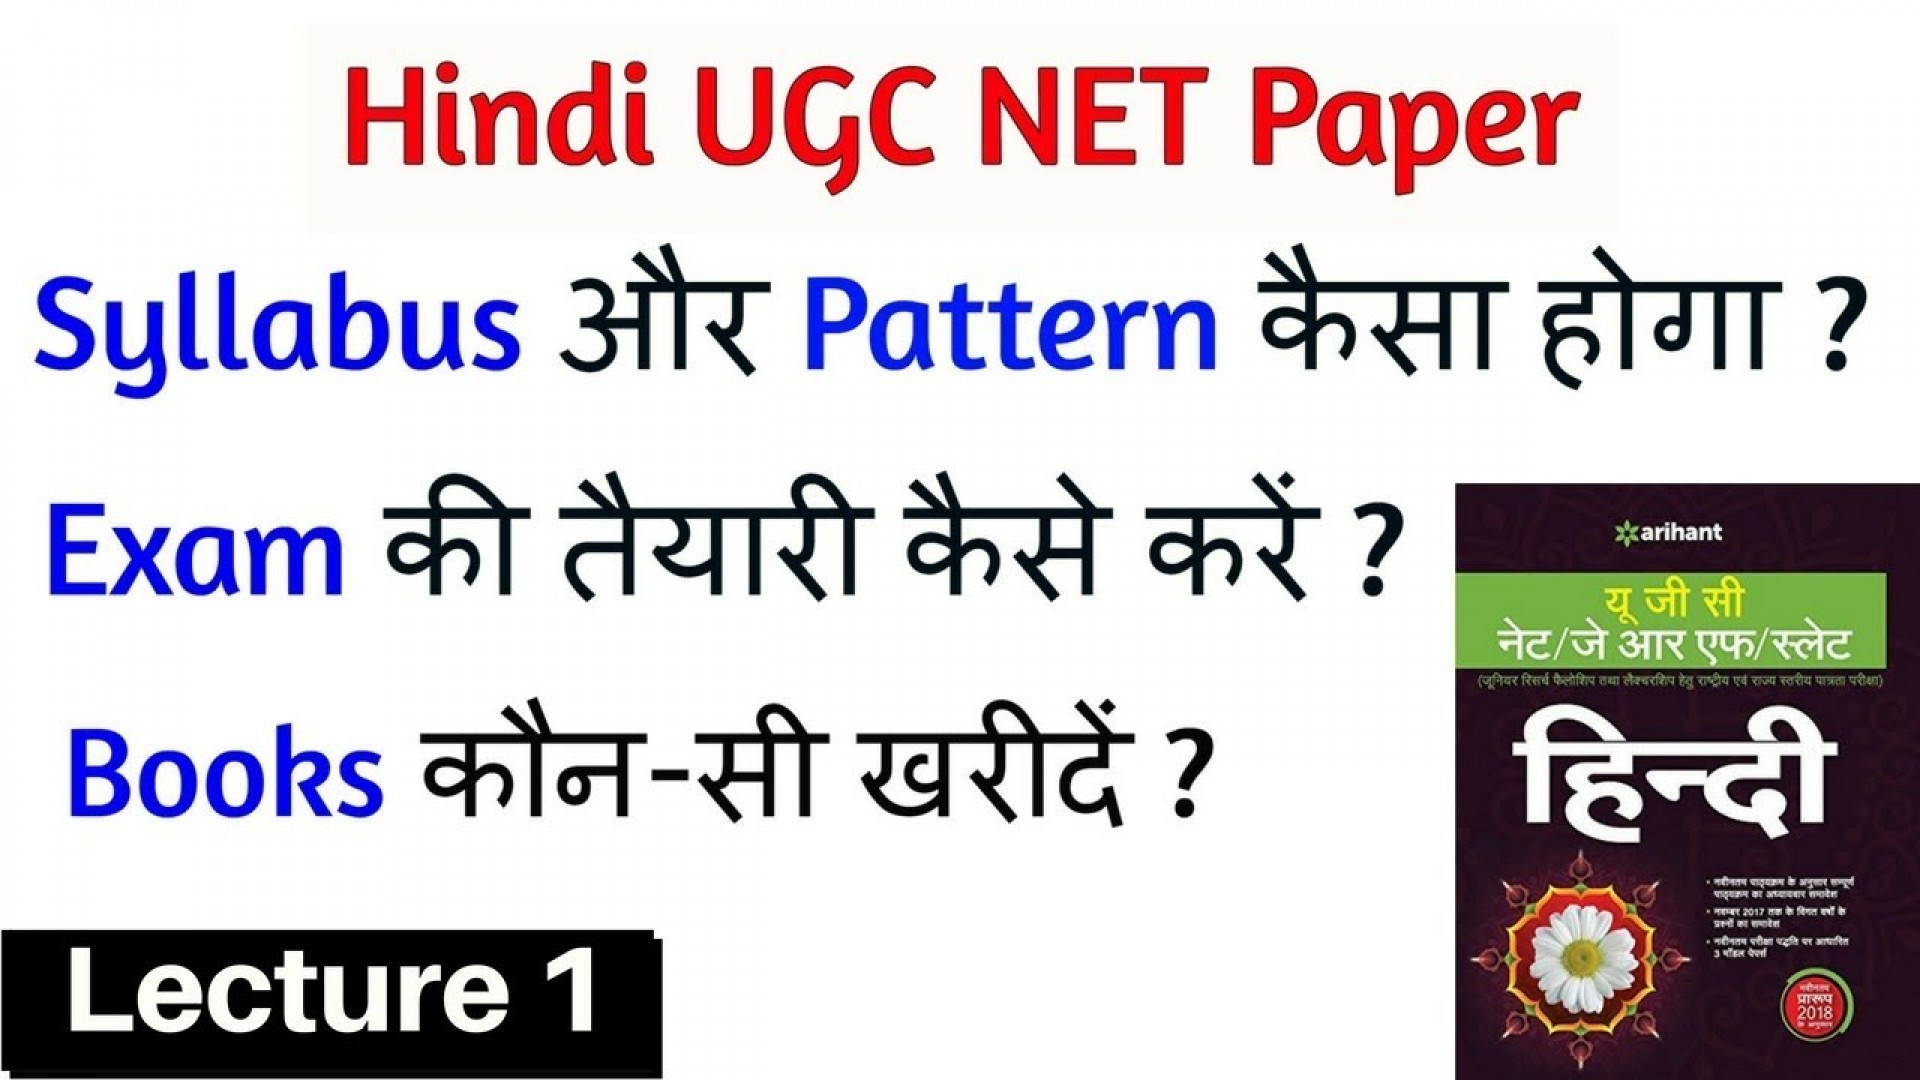 013 Hindi Literature Research Papers Paper Wonderful 1920